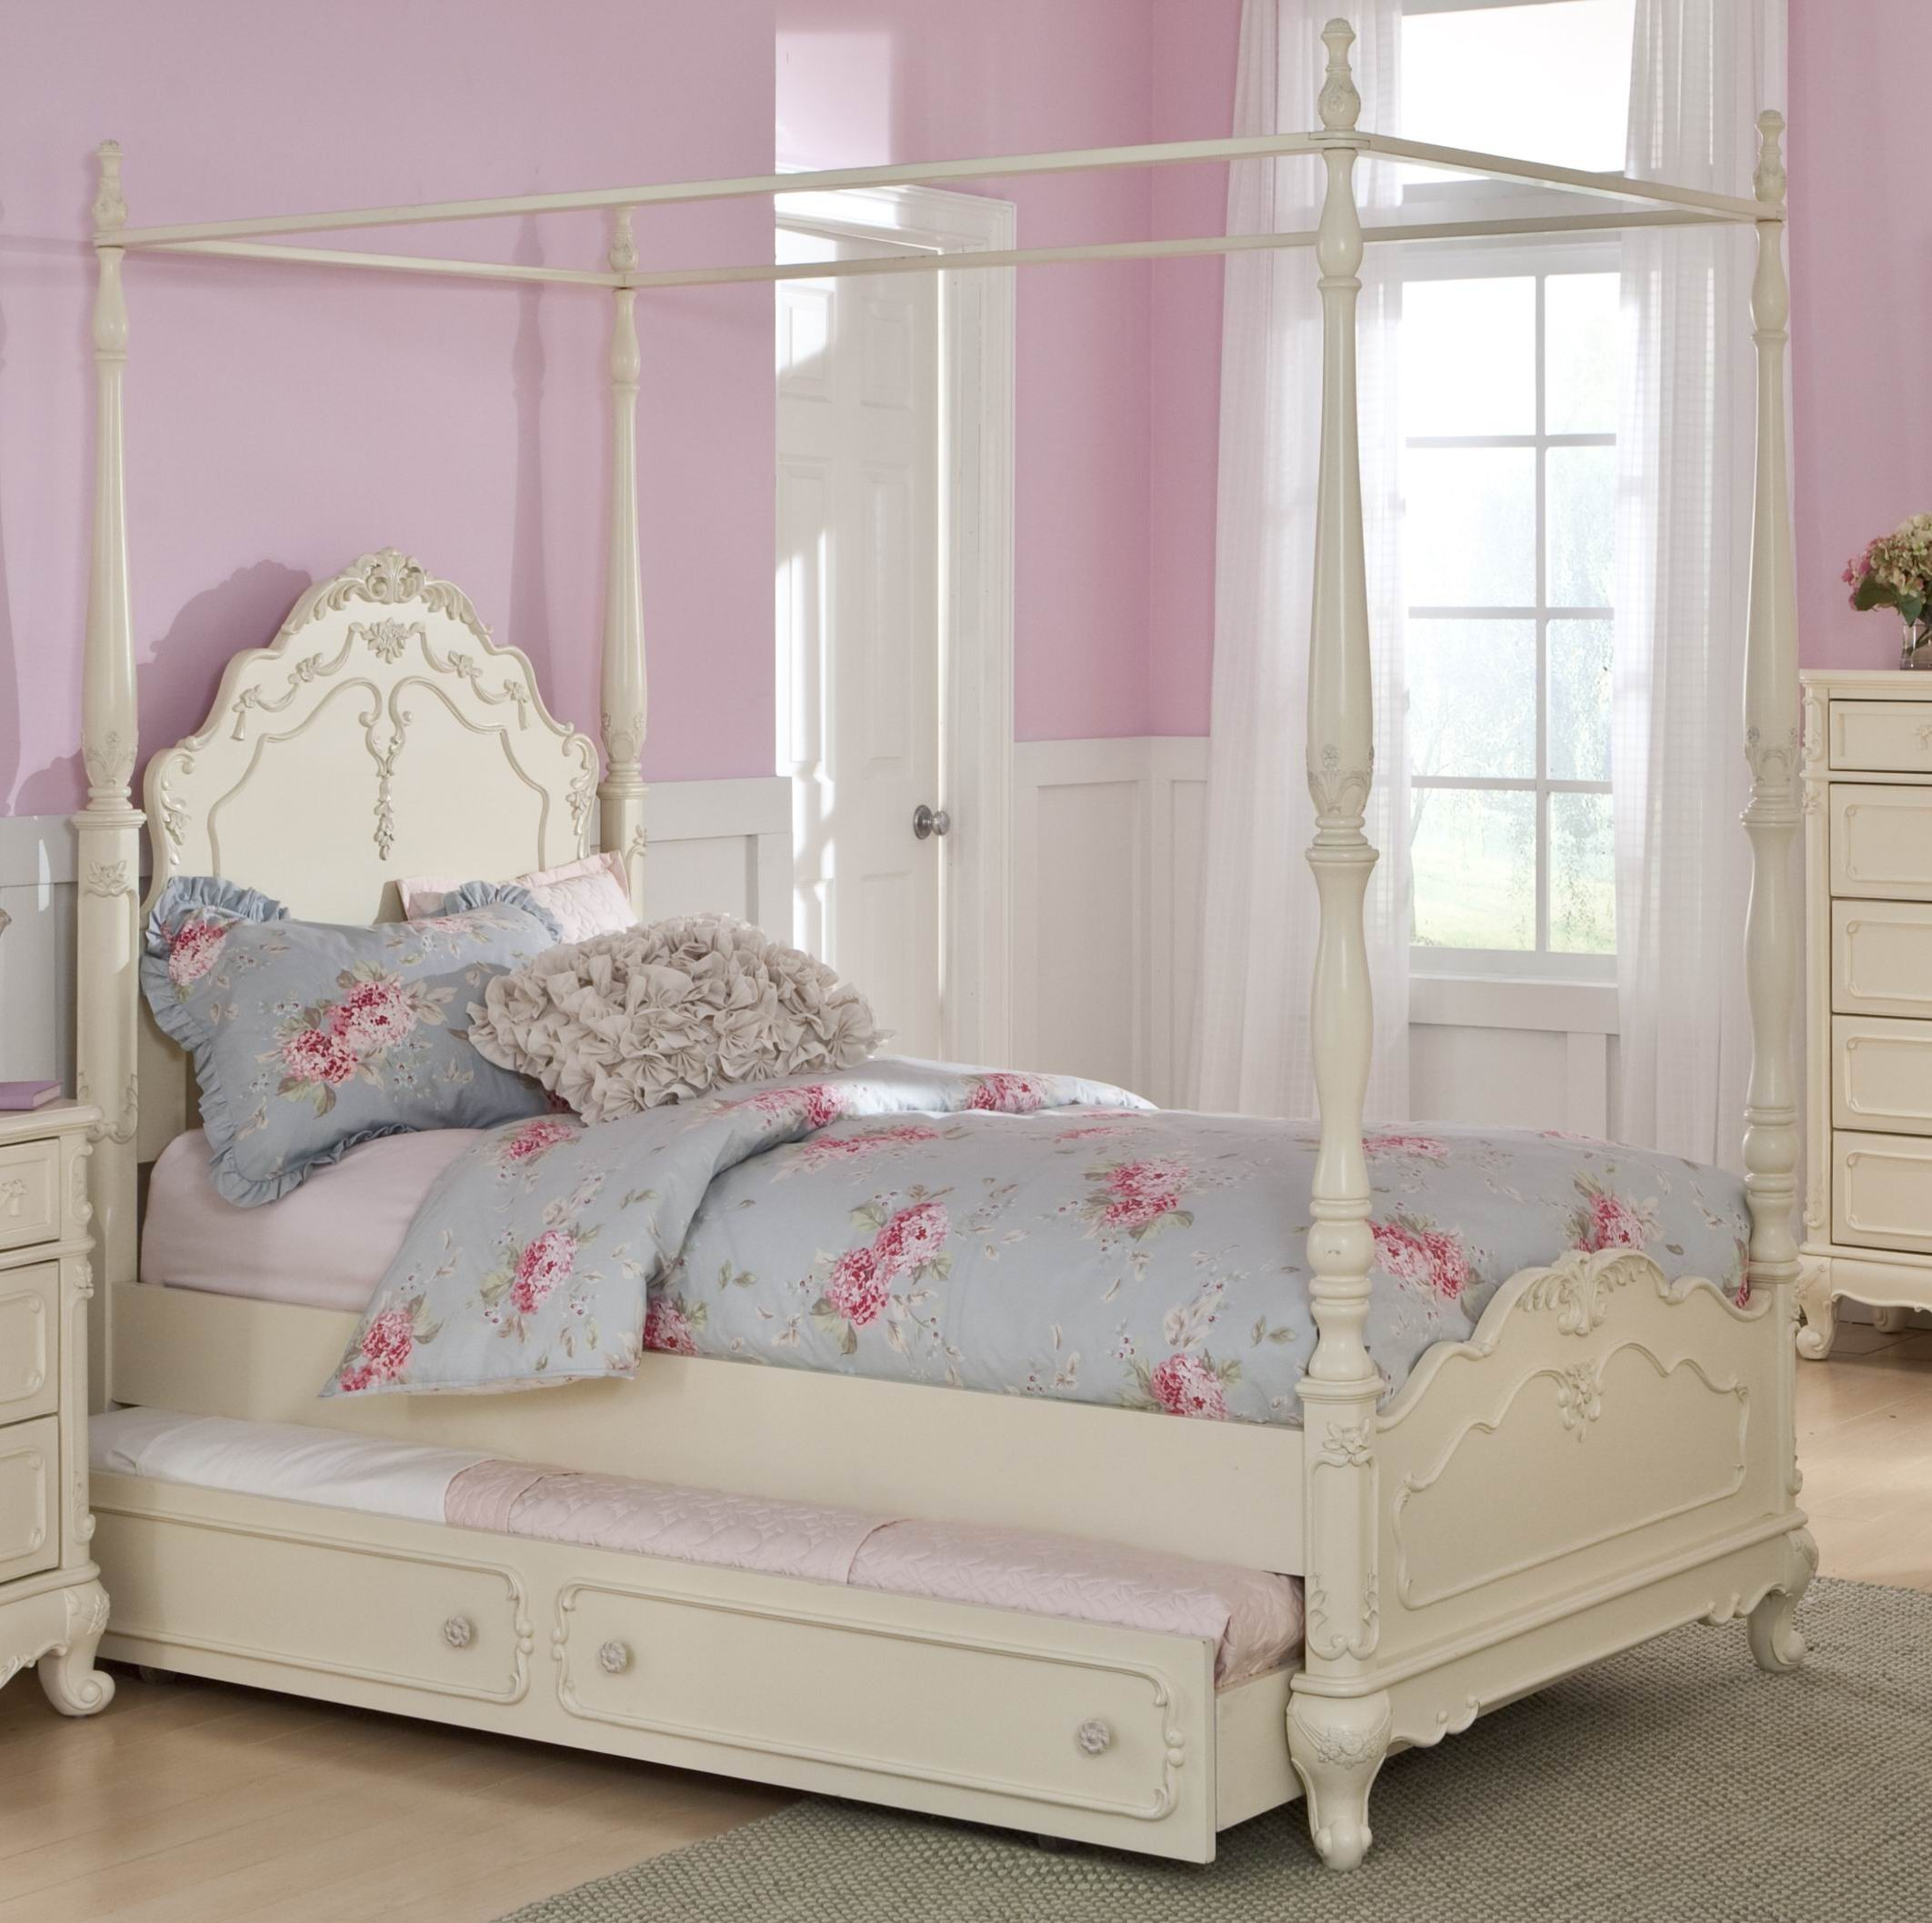 4 Poster Princess Bed Cinderella Full Canopy Poster Bed From Homelegance